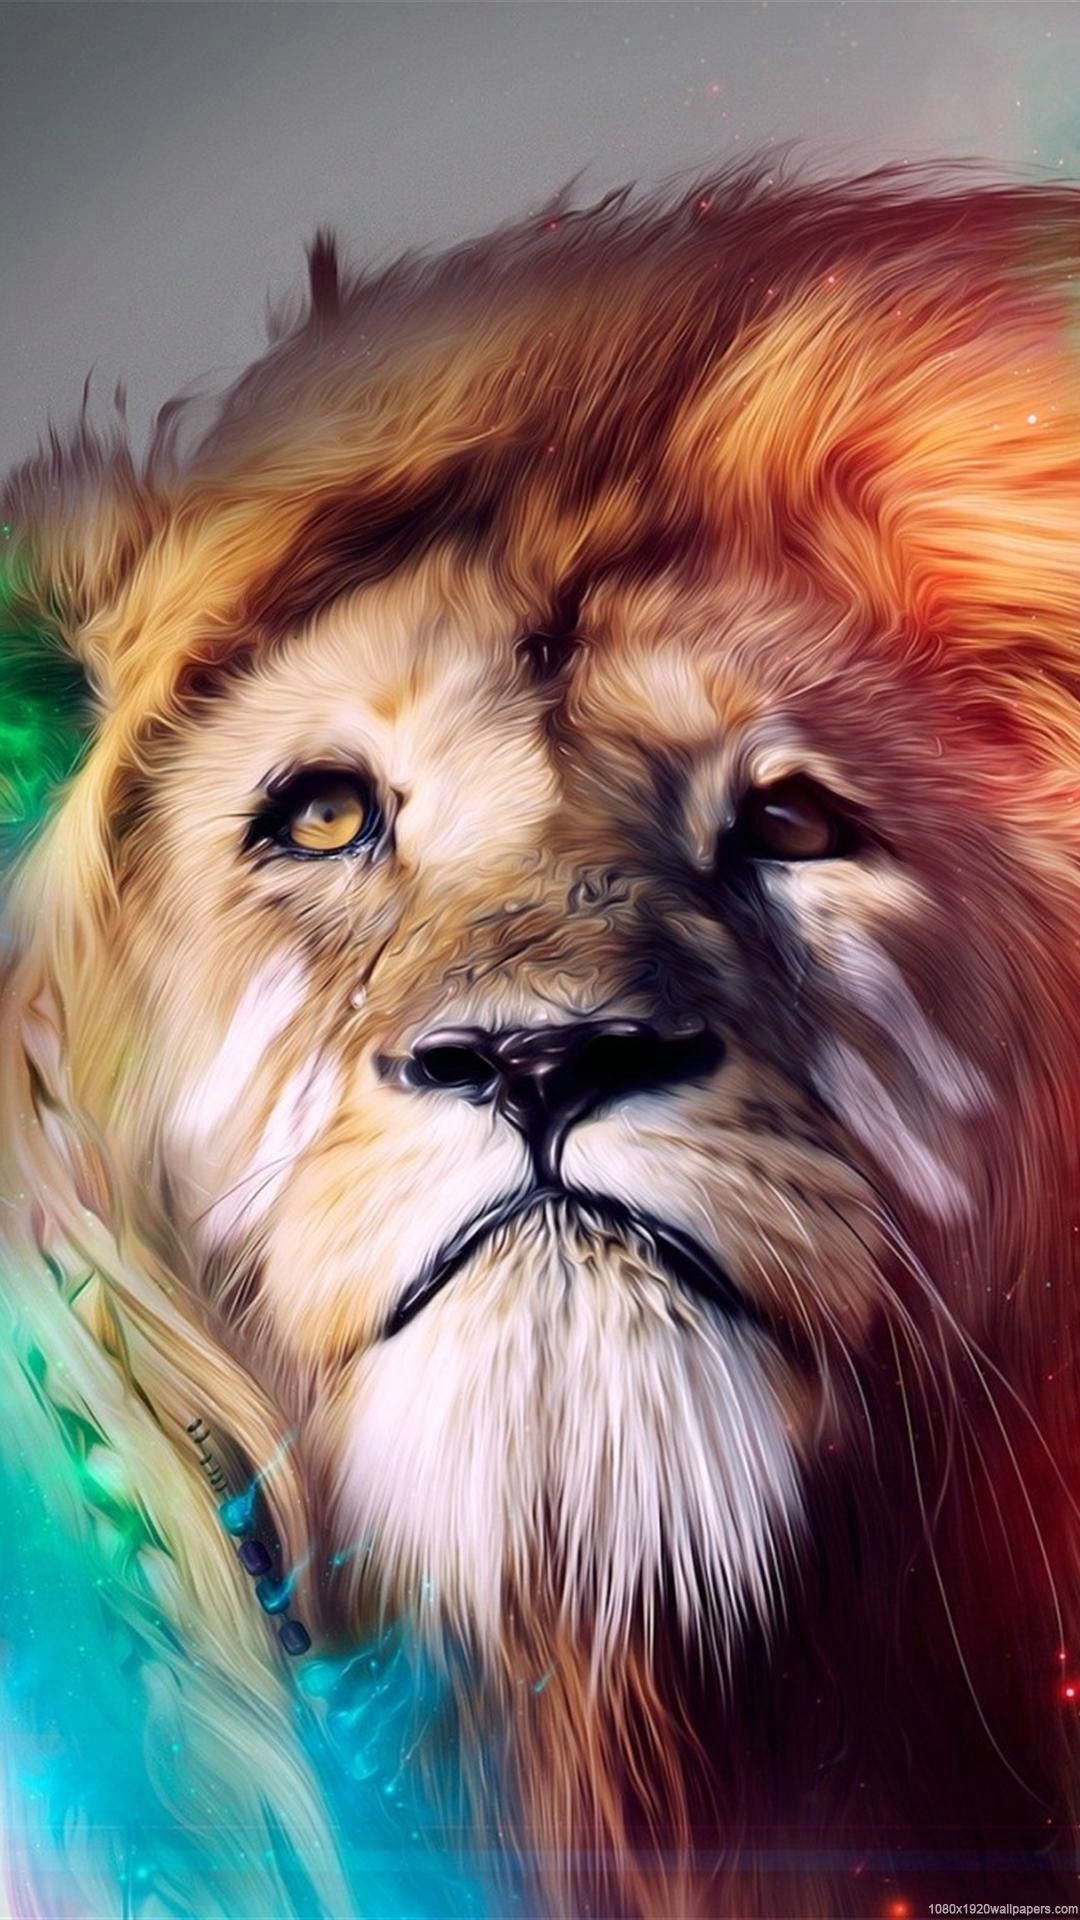 Cool Lions Wallpapers Wallpaper Cave